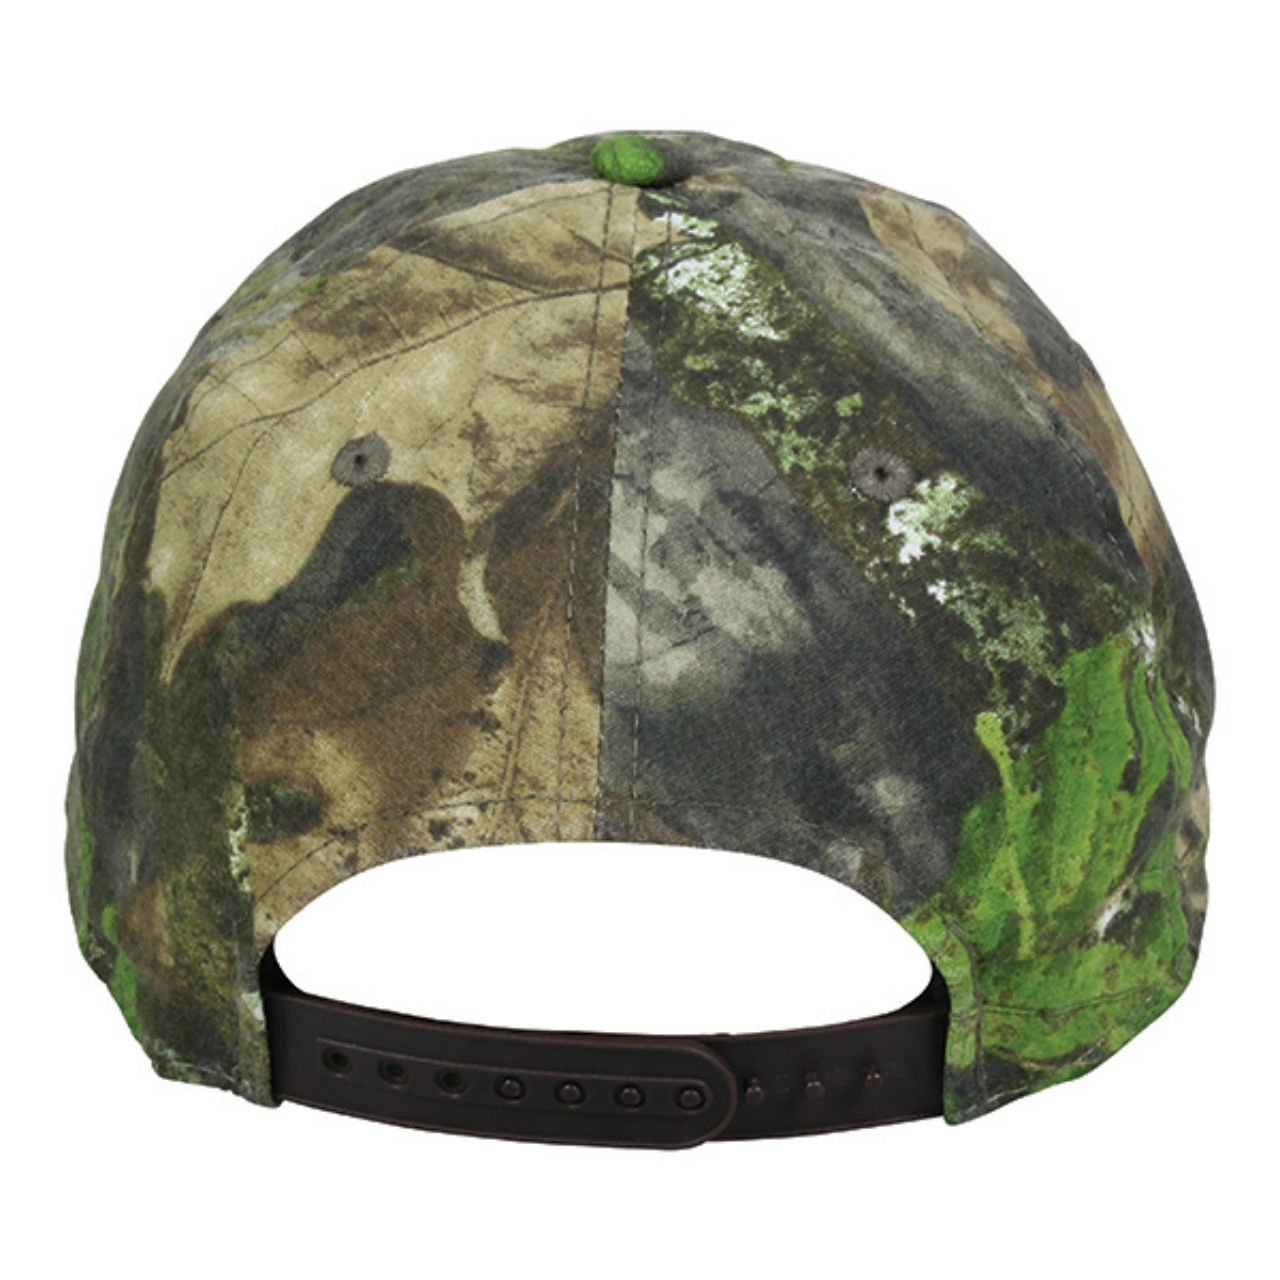 cac8de54be4b7 Amazon.com : Outdoor Cap NWTF American Flag Mossy Oak Obsession National  Wild Turkey Federation Camo Hunting Hat : Sports & Outdoors